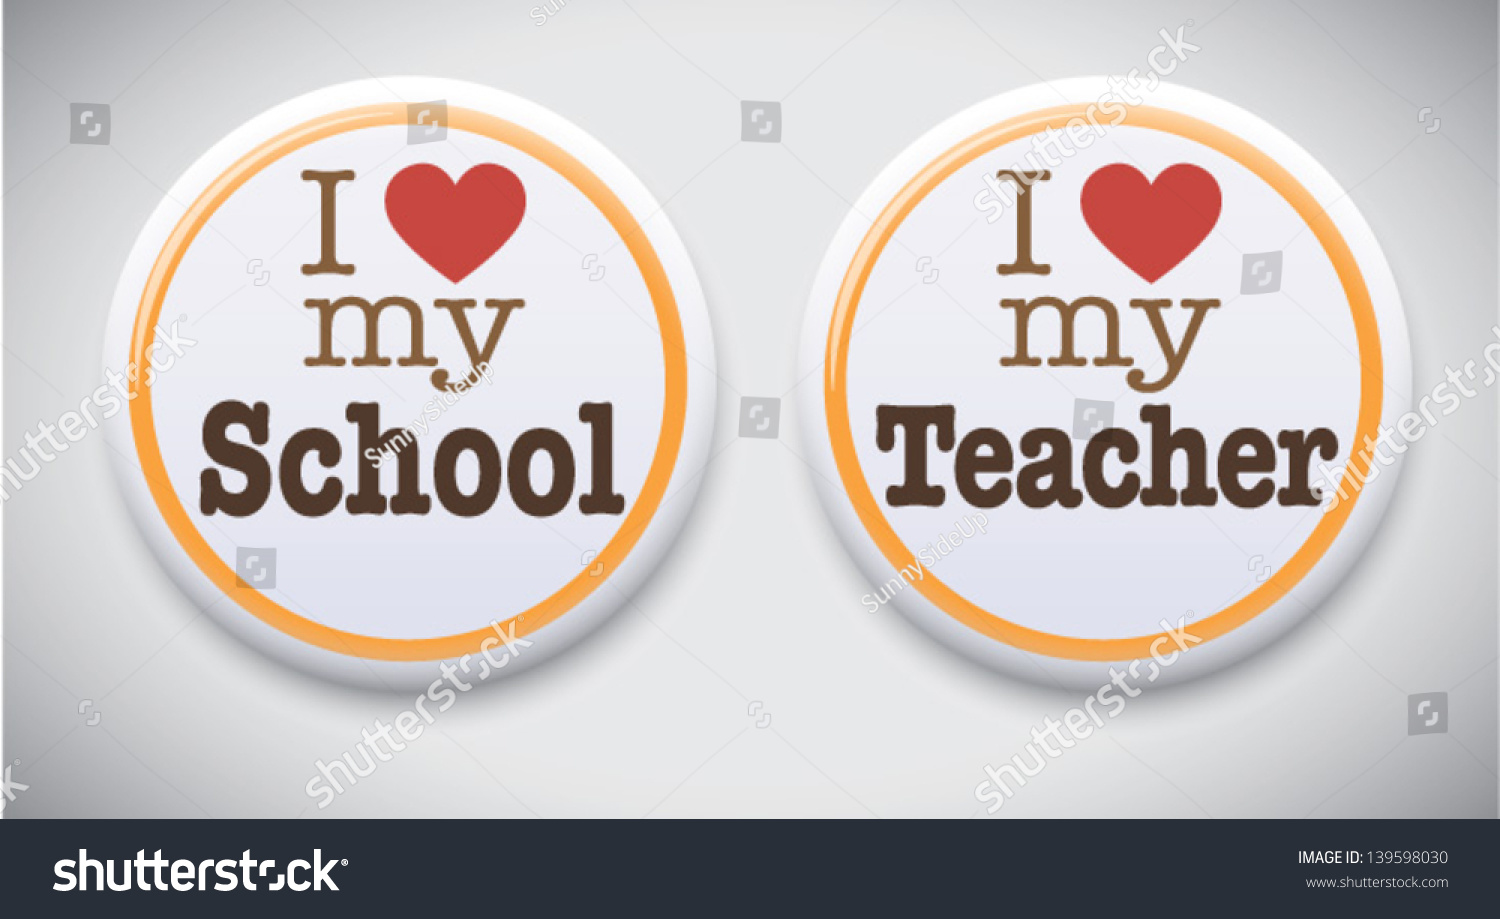 Love My Teacher Love My School Stock Vector